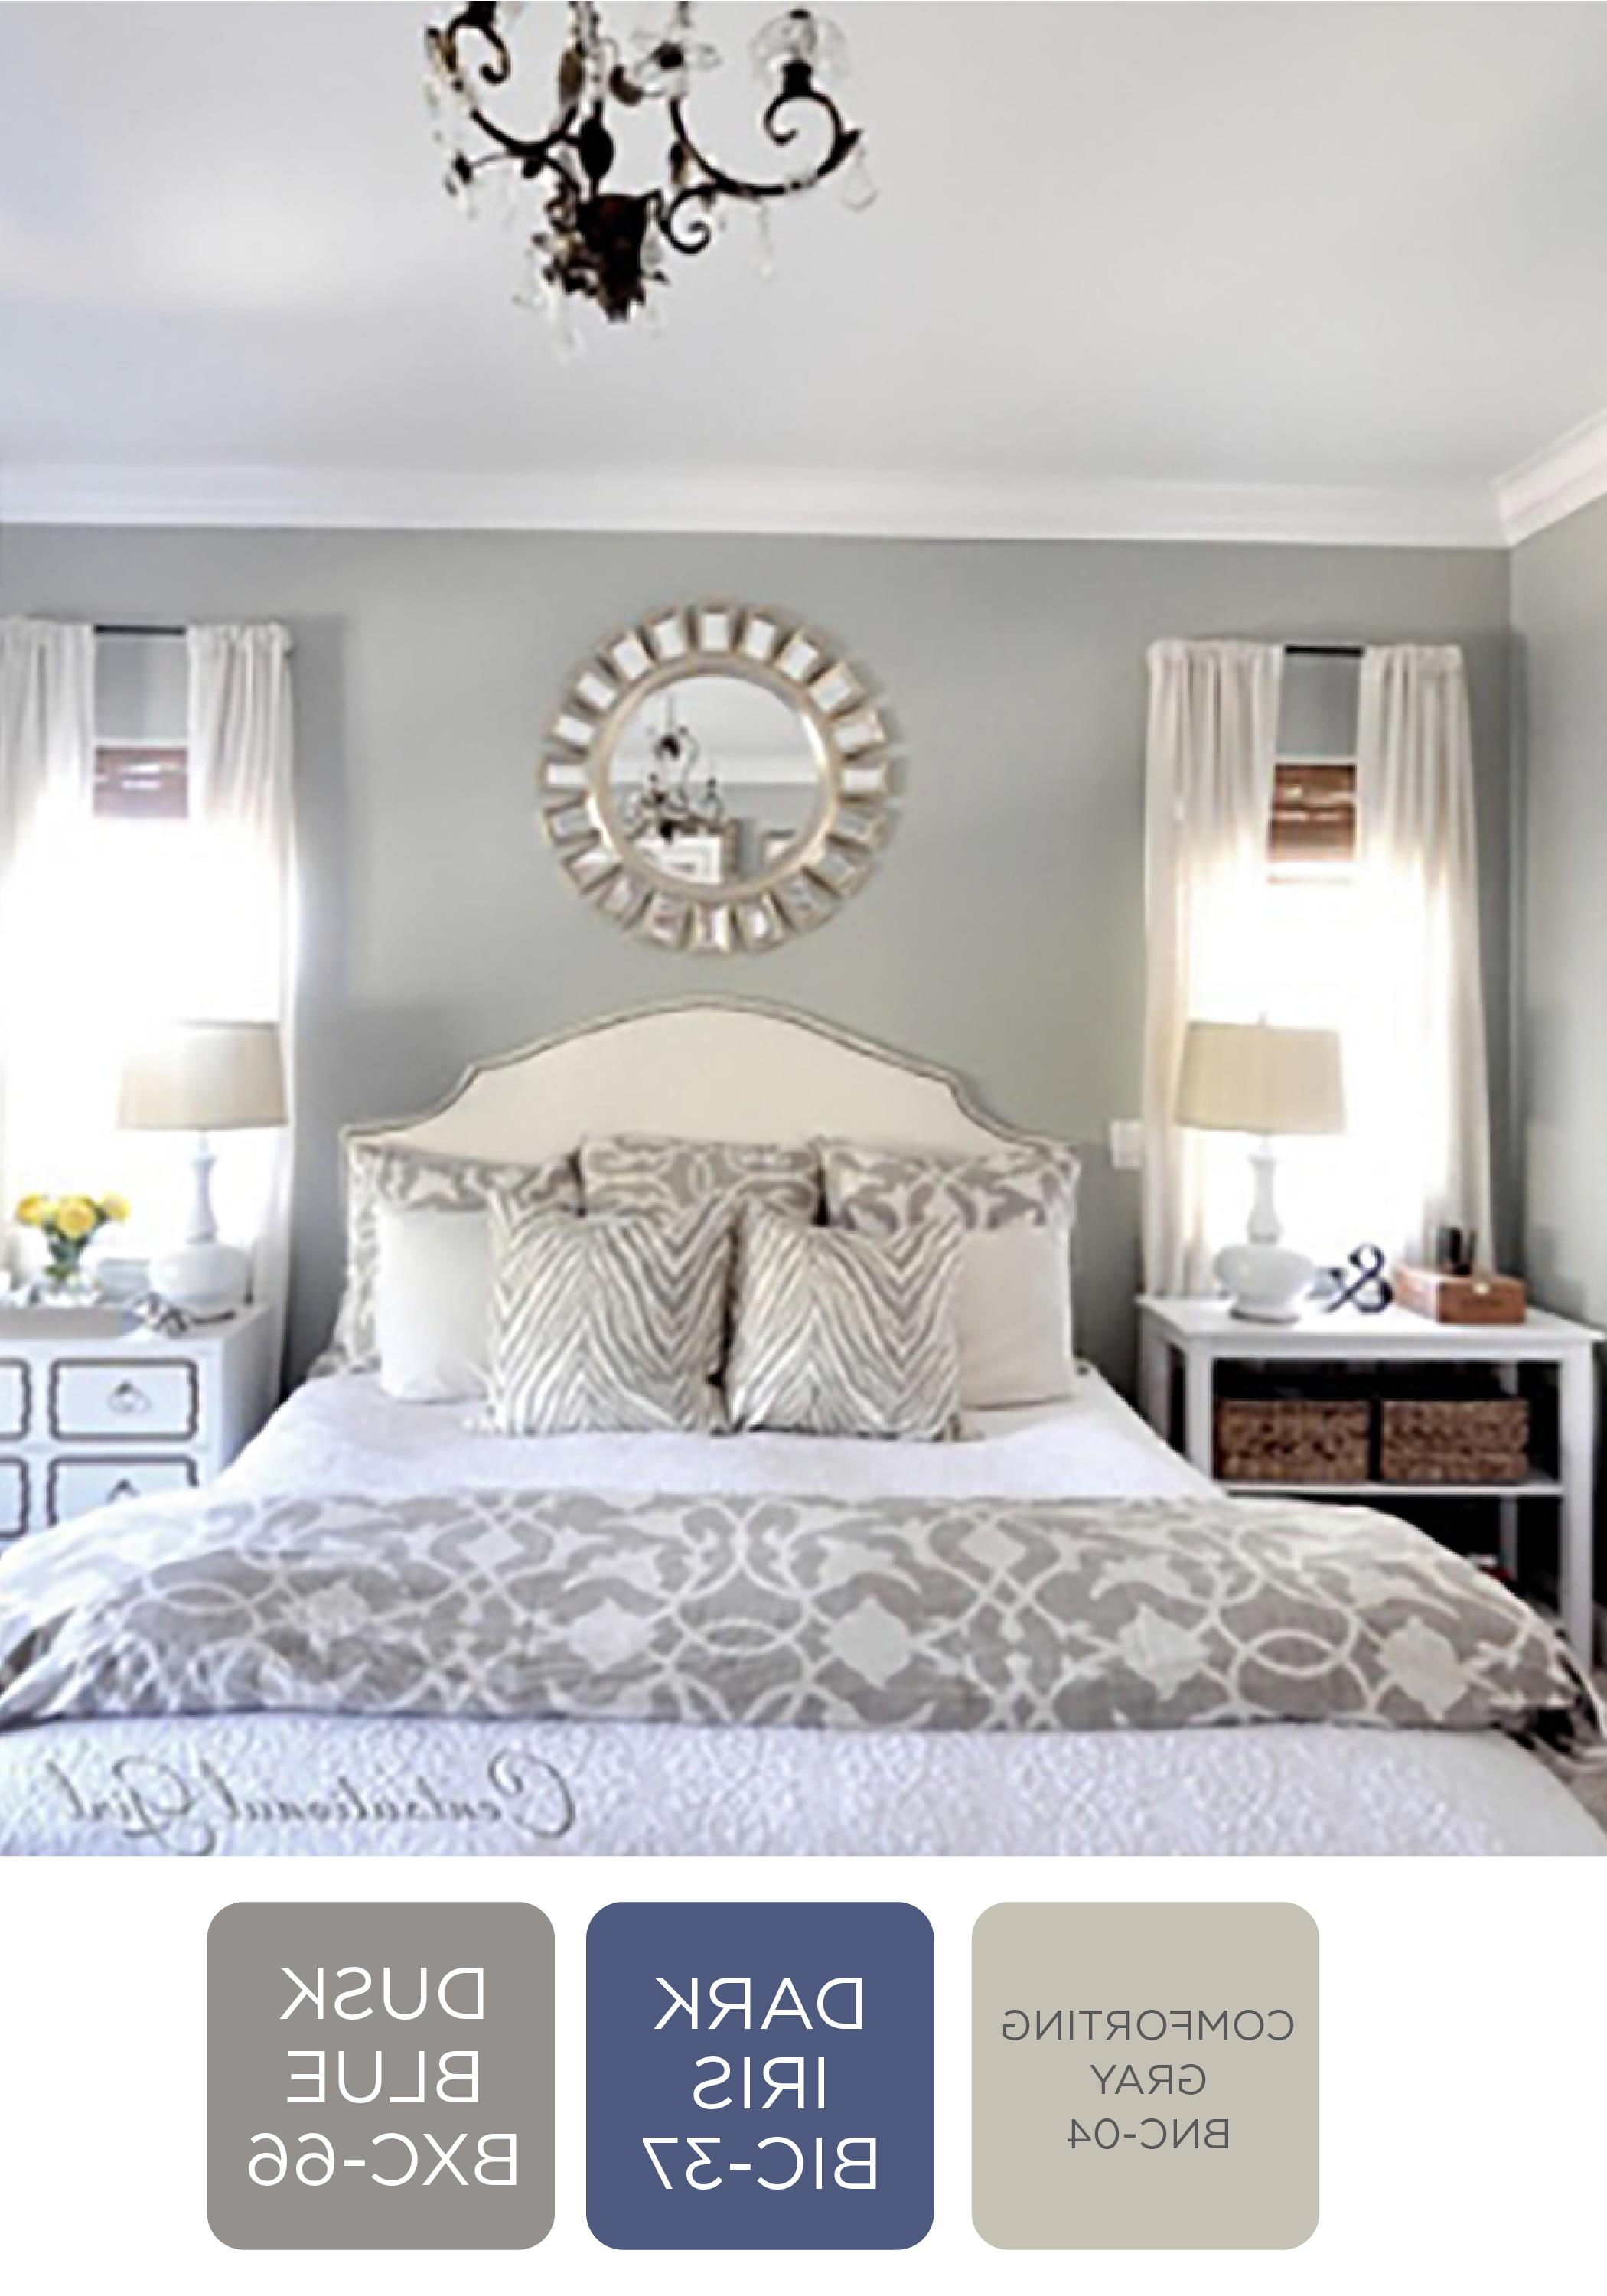 bedroom color behr Cozy Greys | Comfort gray, Relaxing colors and Dusk 3000 X 2100